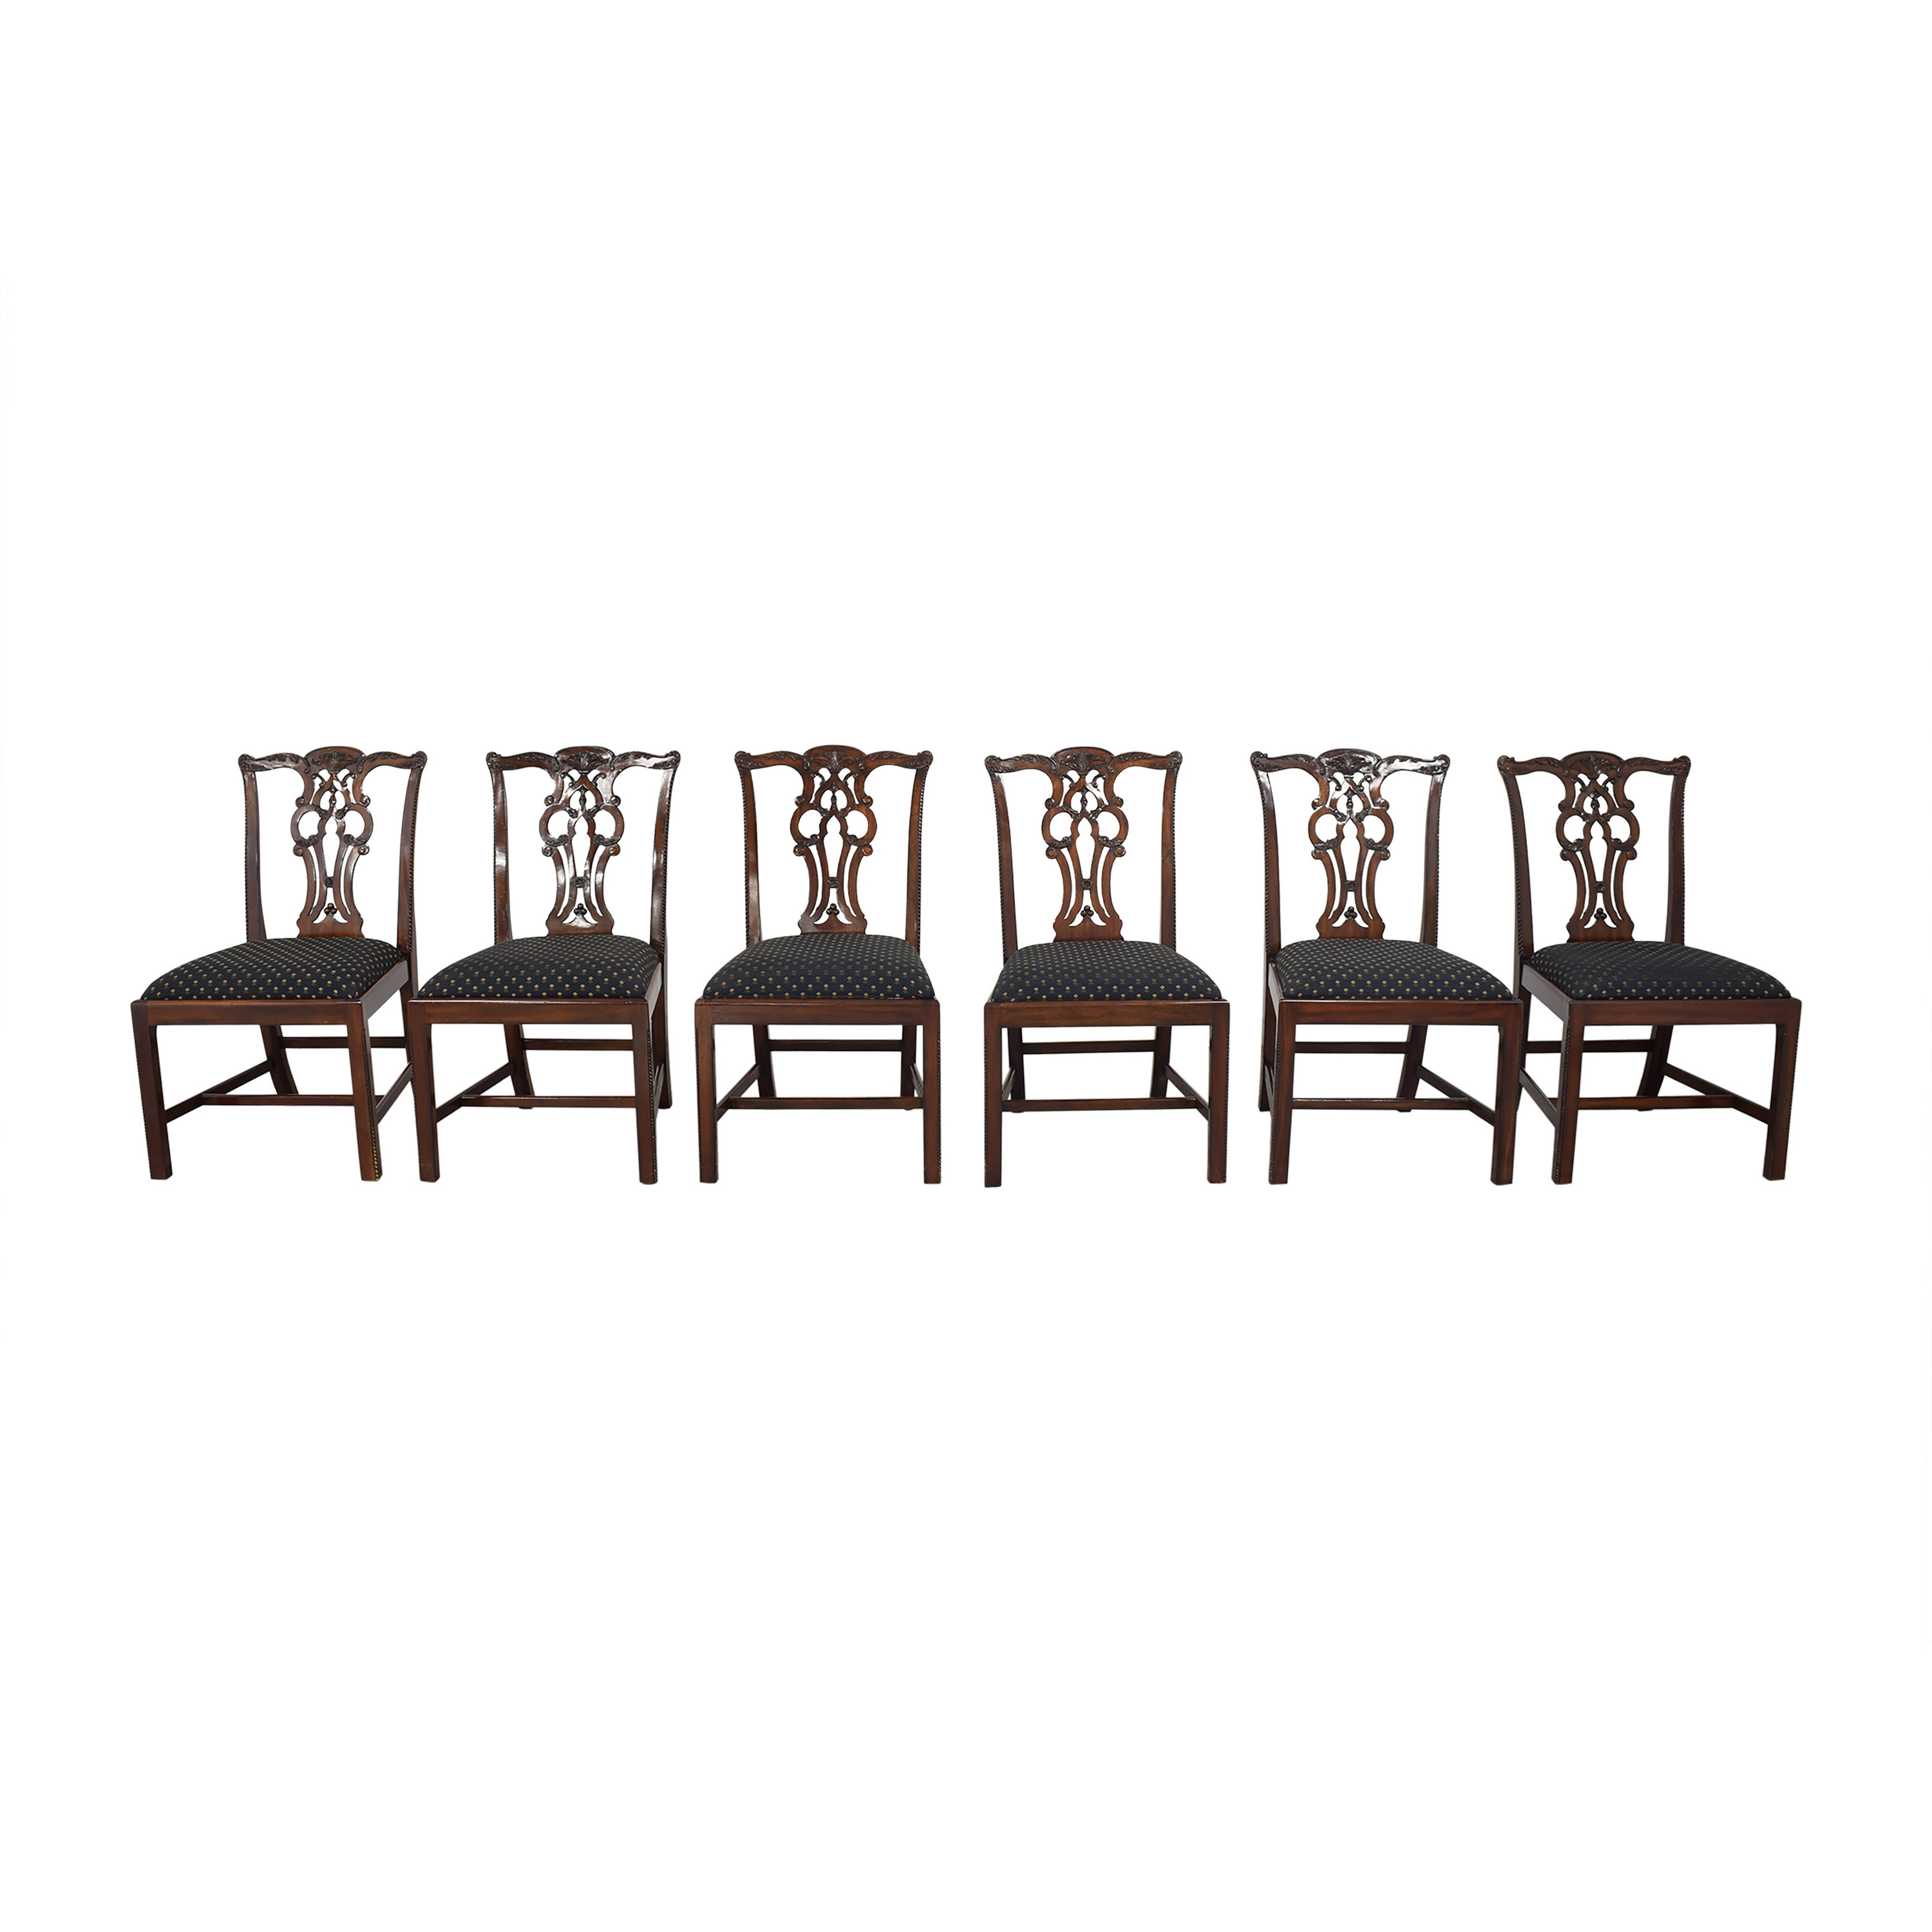 buy Maitland-Smith Chippendale Dining Chairs Maitland-Smith Dining Chairs